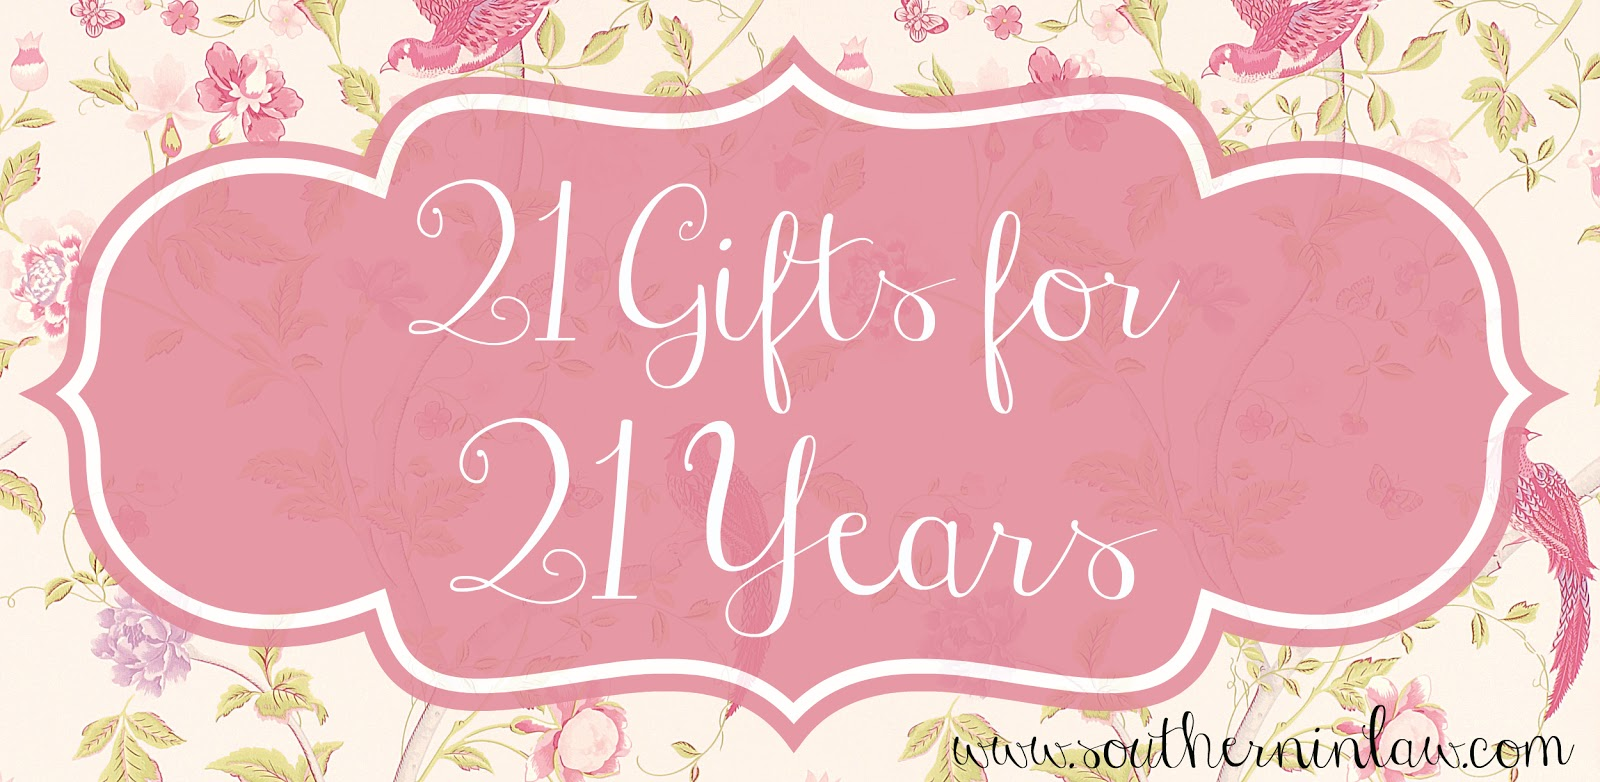 southern in law 21 gifts for 21 years being thankful on my 21st